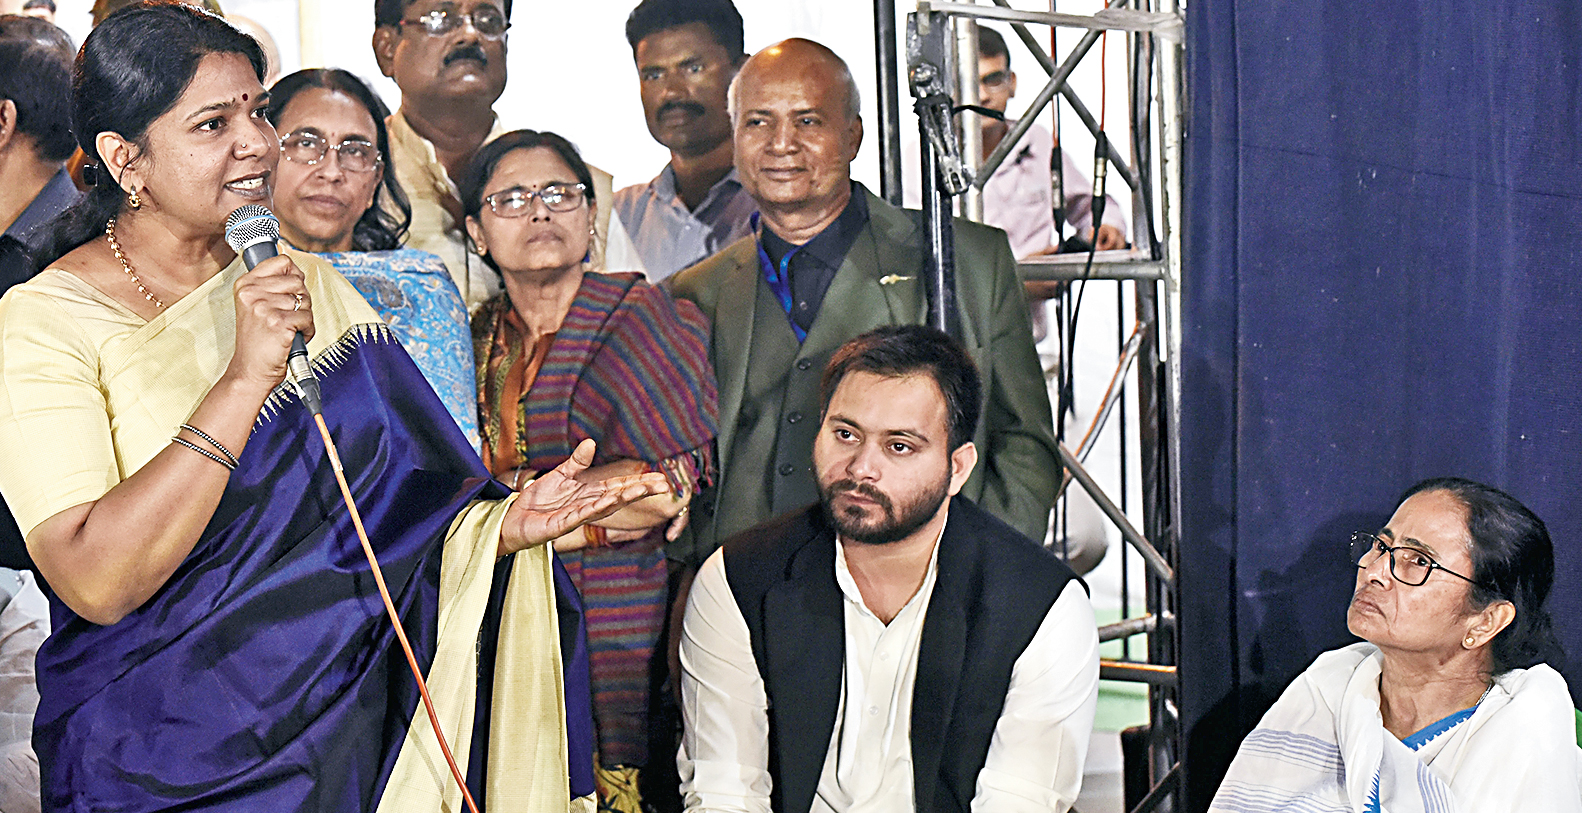 Opposition stands with Trinamul in House